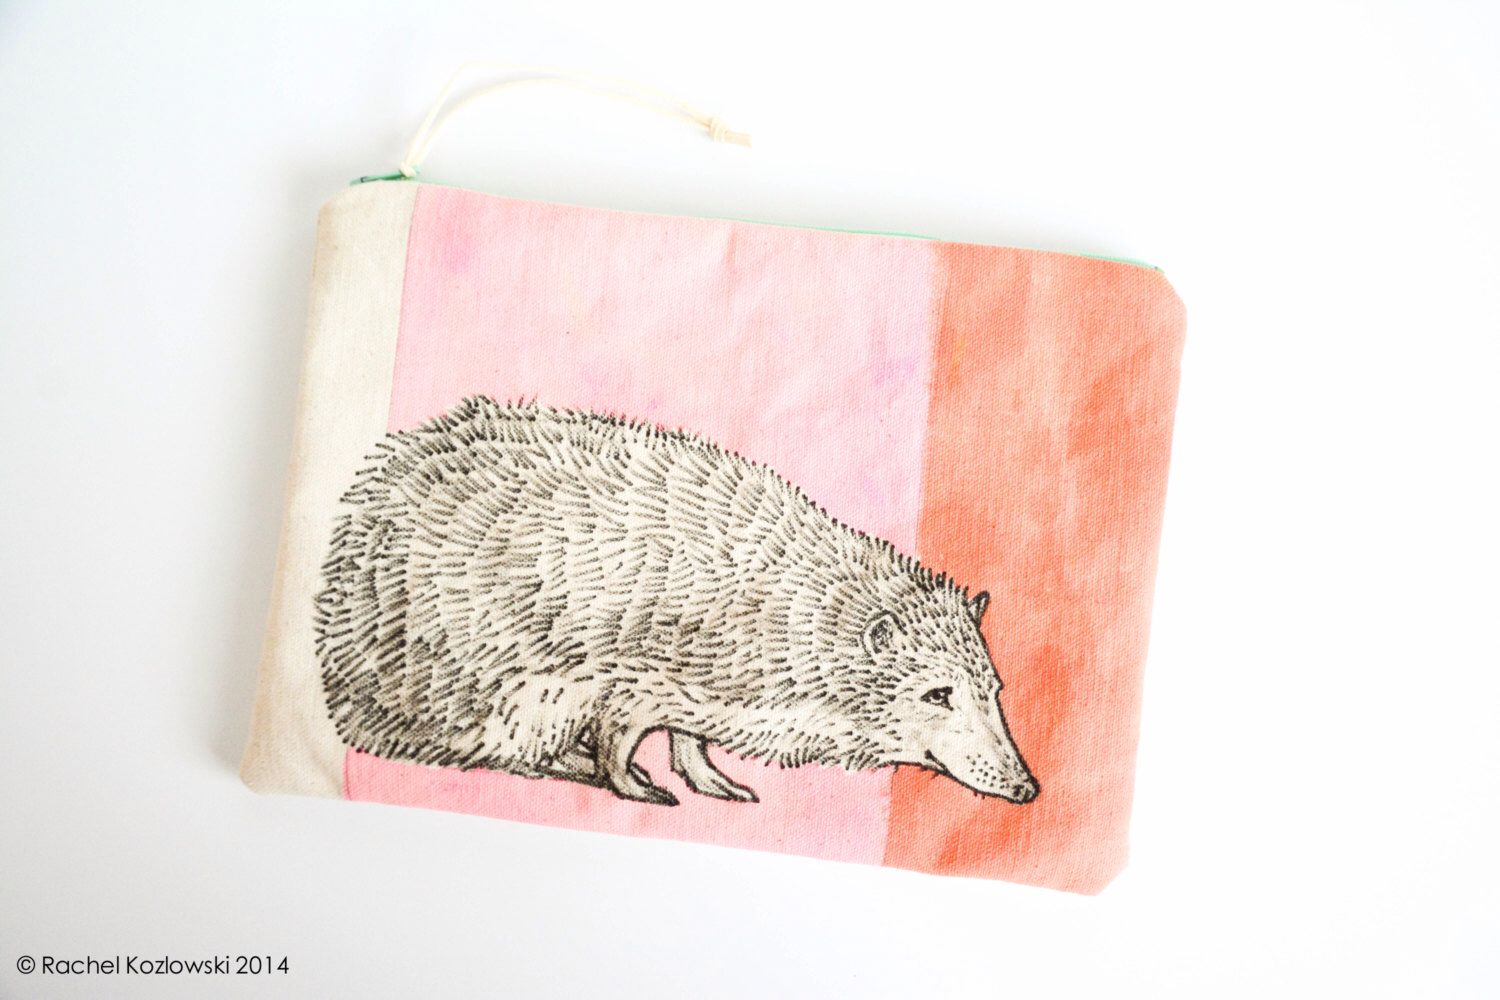 One-of-a-kind Hand Painted Hedgehog Clutch by RKArtwork on Etsy https://www.etsy.com/listing/244325576/one-of-a-kind-hand-painted-hedgehog